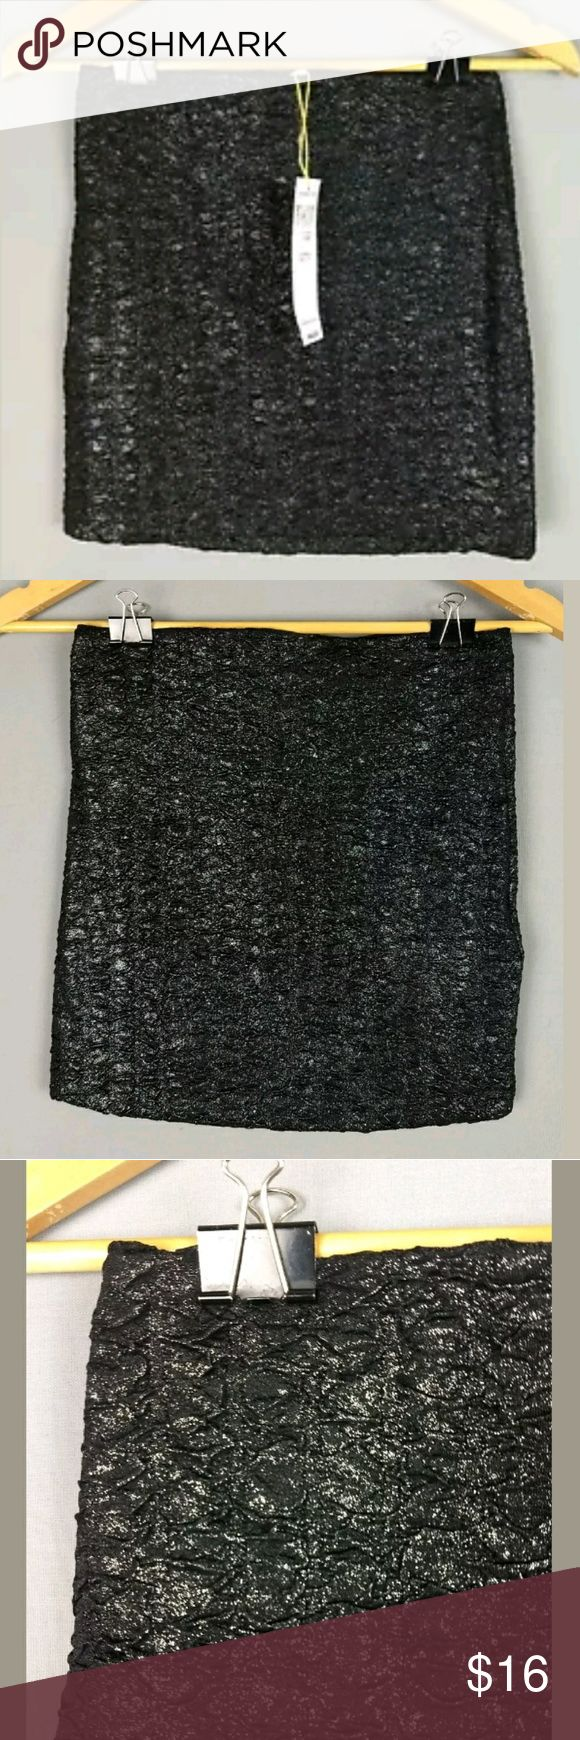 New BCBGeneration Gunmetal Metallic Mini Skirt Measurements/condition are in the pics. Let me know if you have any questions! Unlined, textured and stretchy. BCBGeneration Skirts Mini